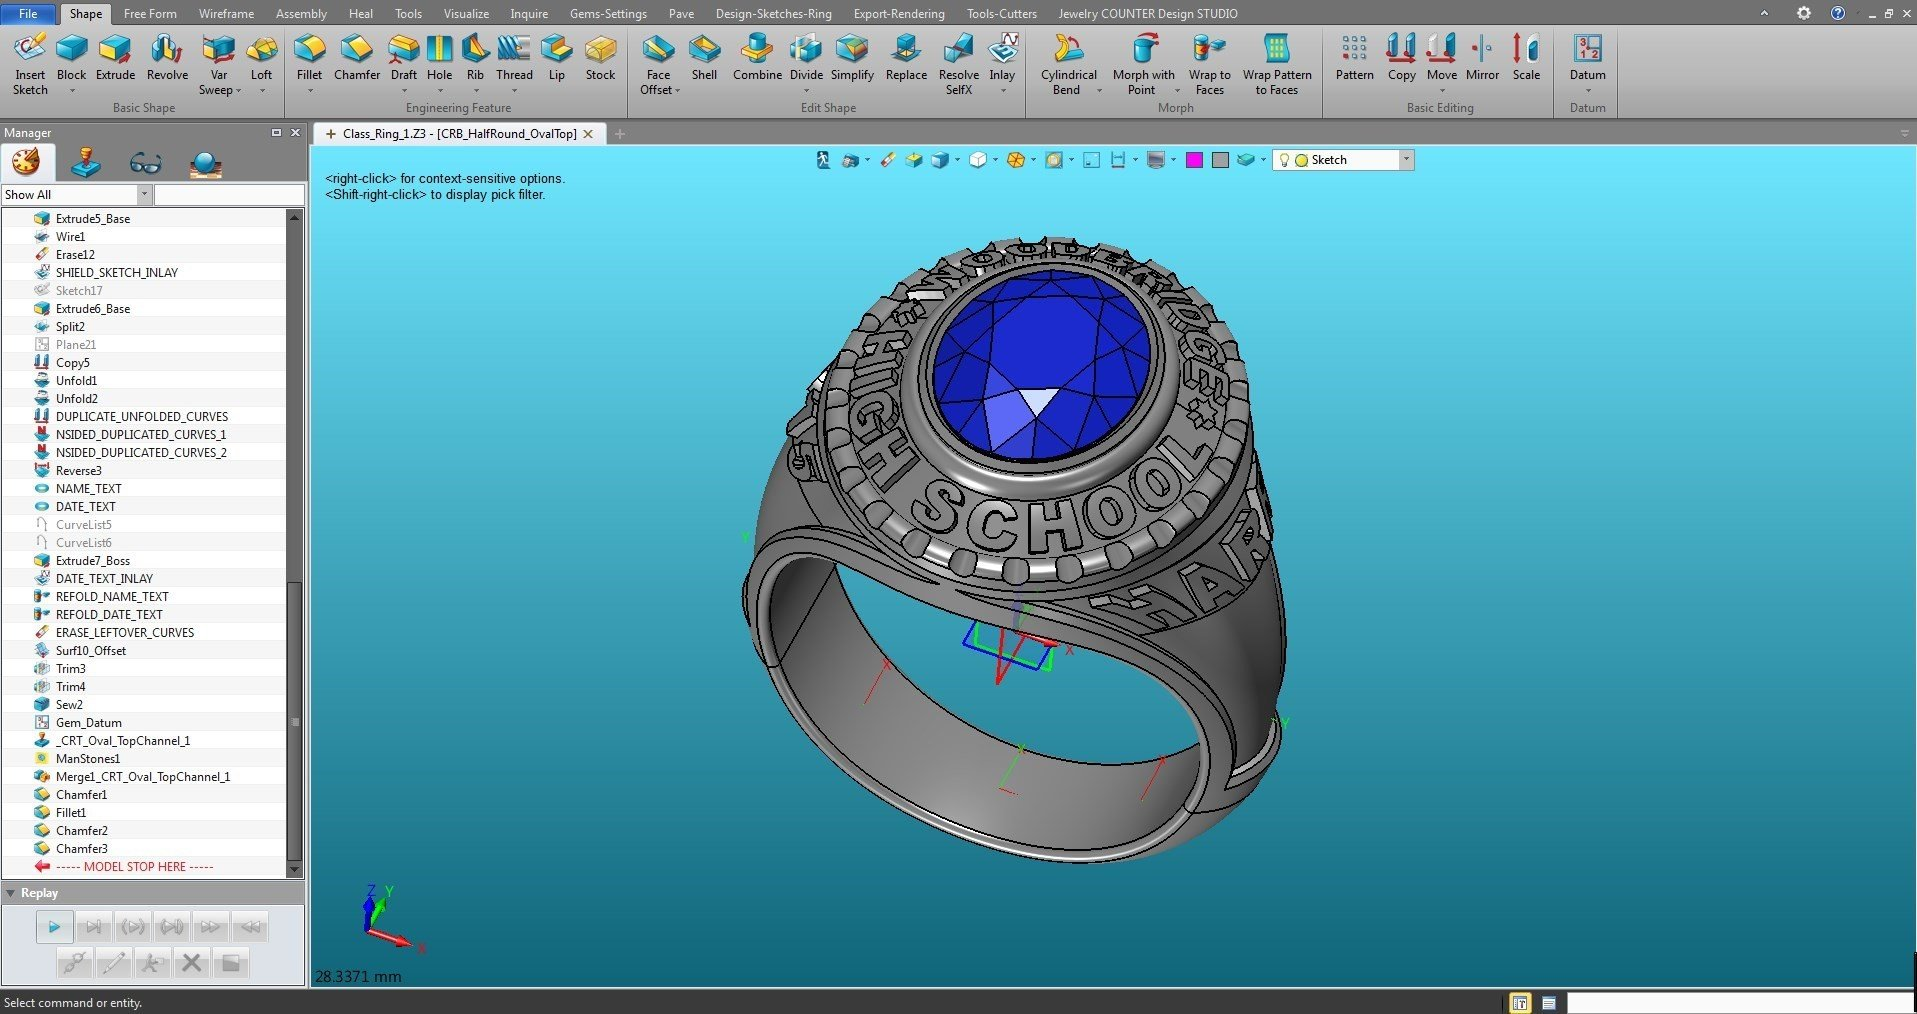 Rhino 3d software, free download mac